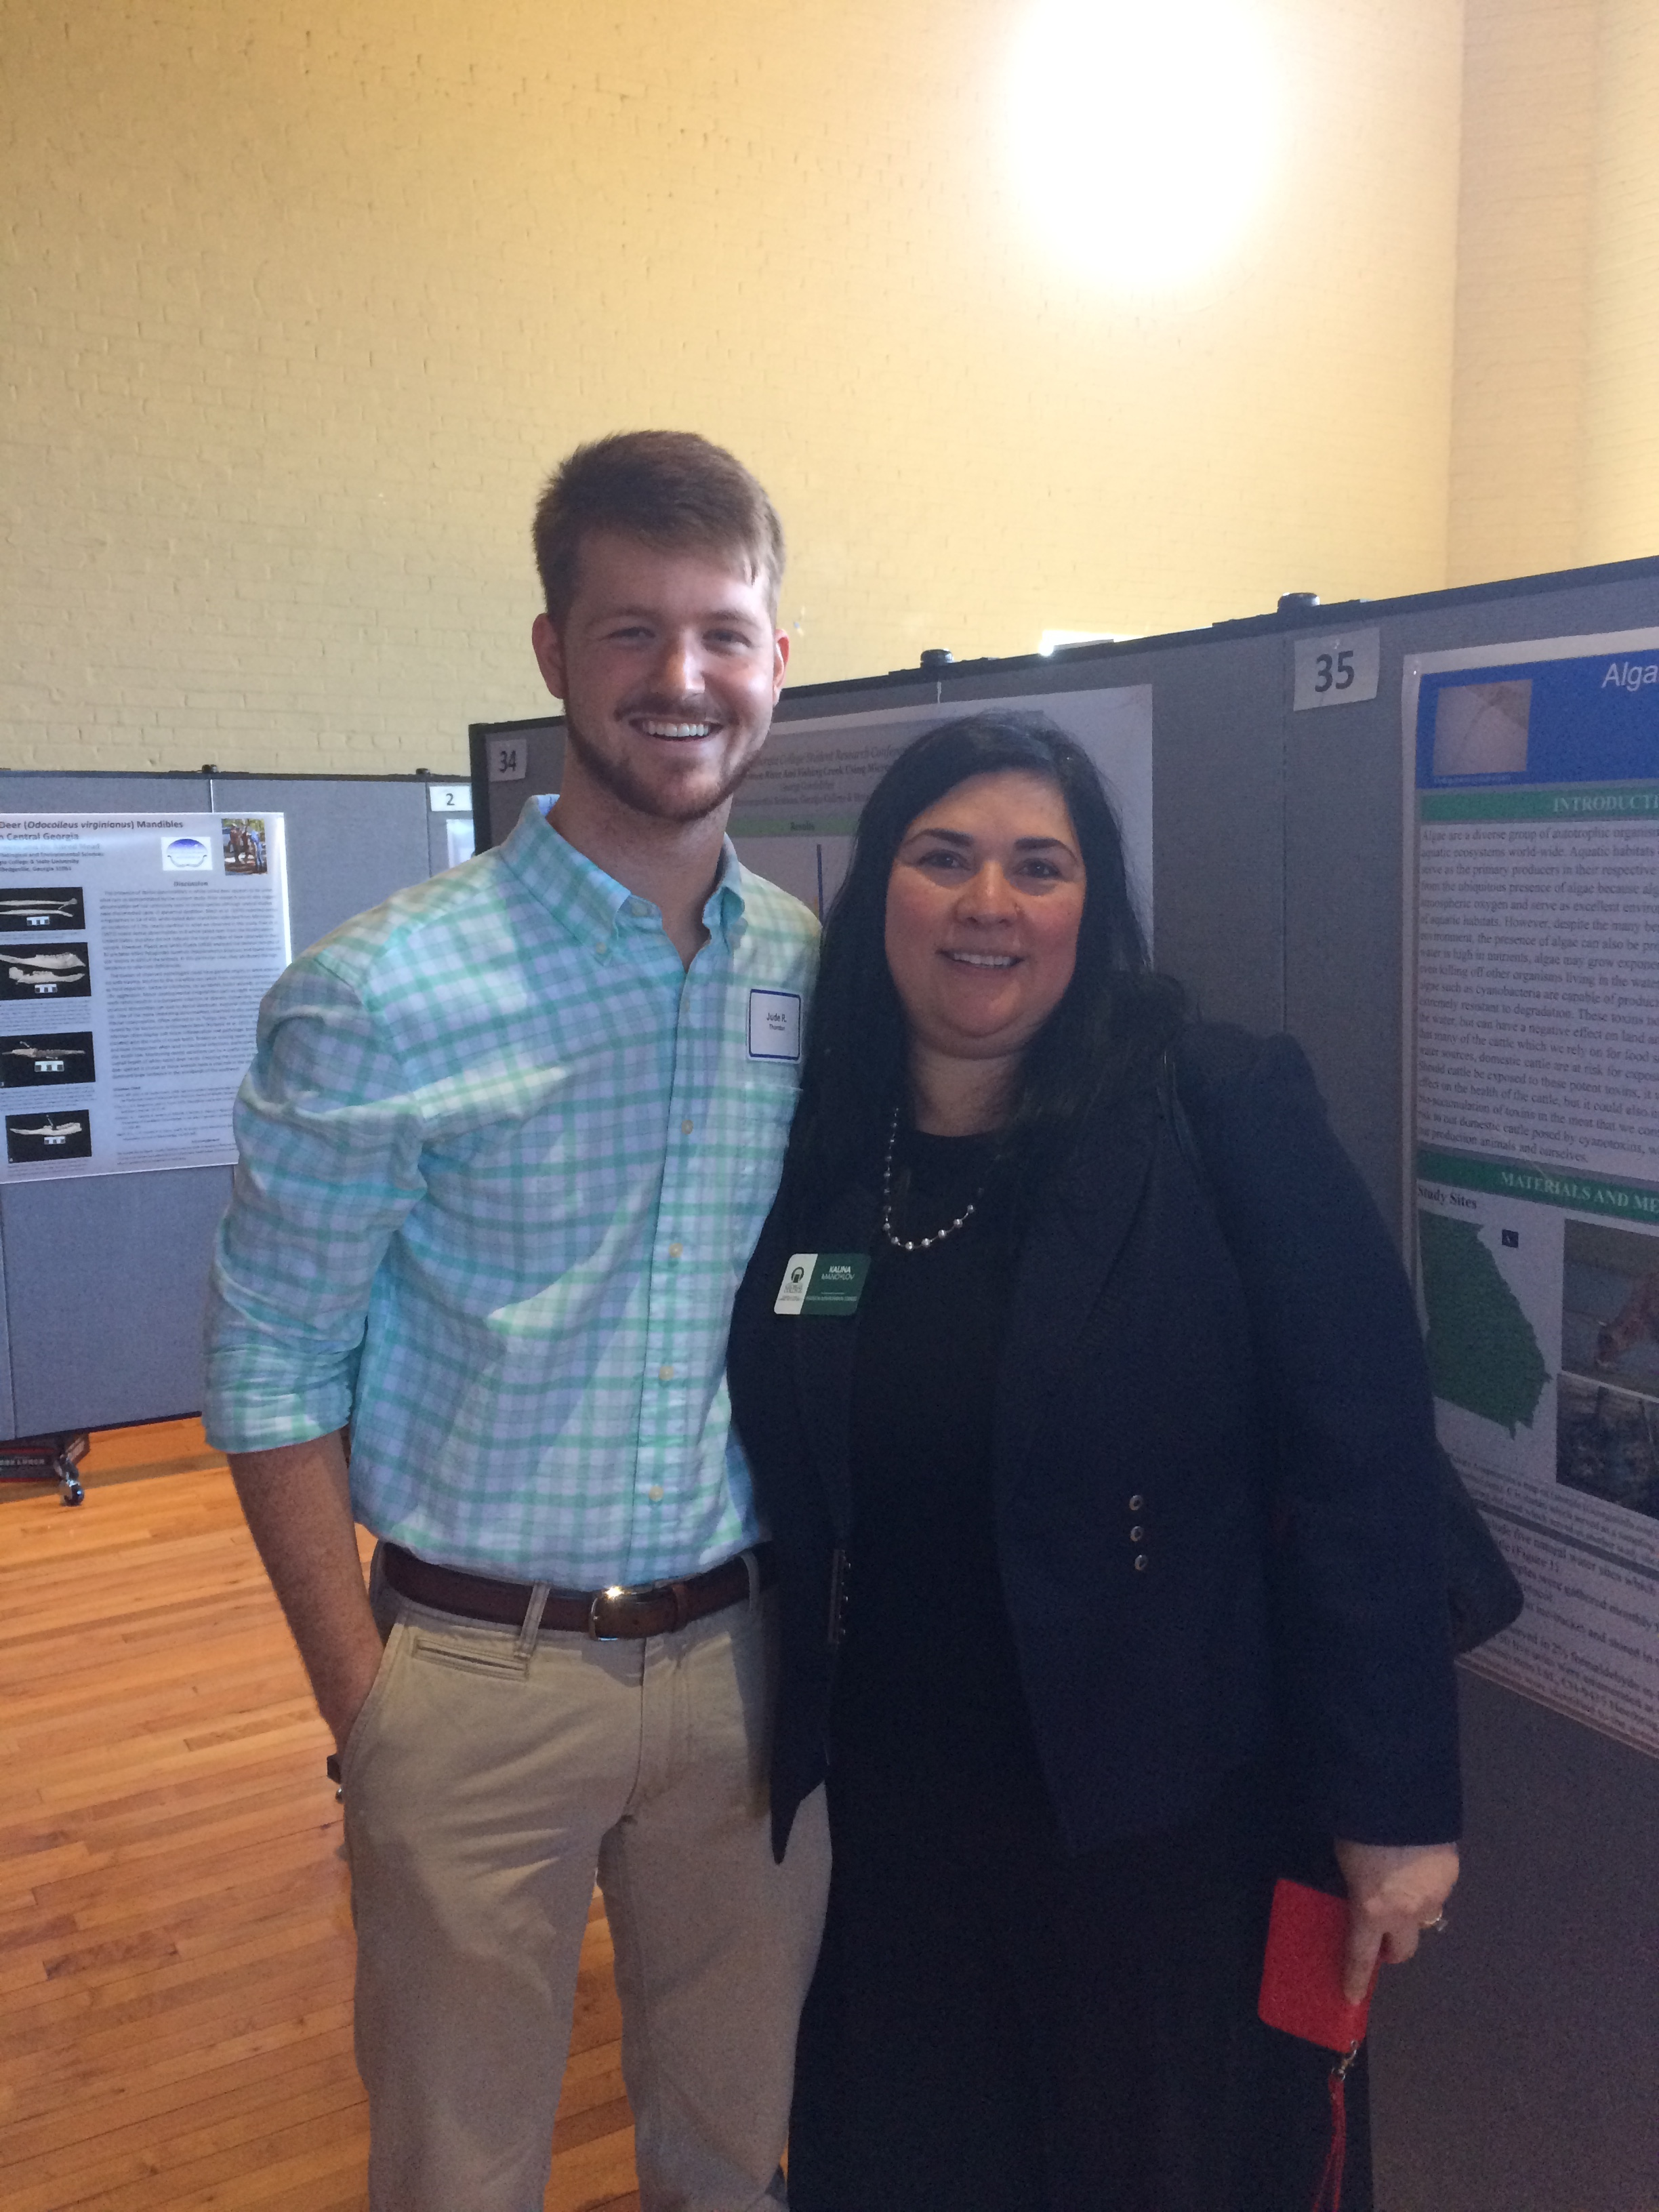 presenter and mentor in front of poster session